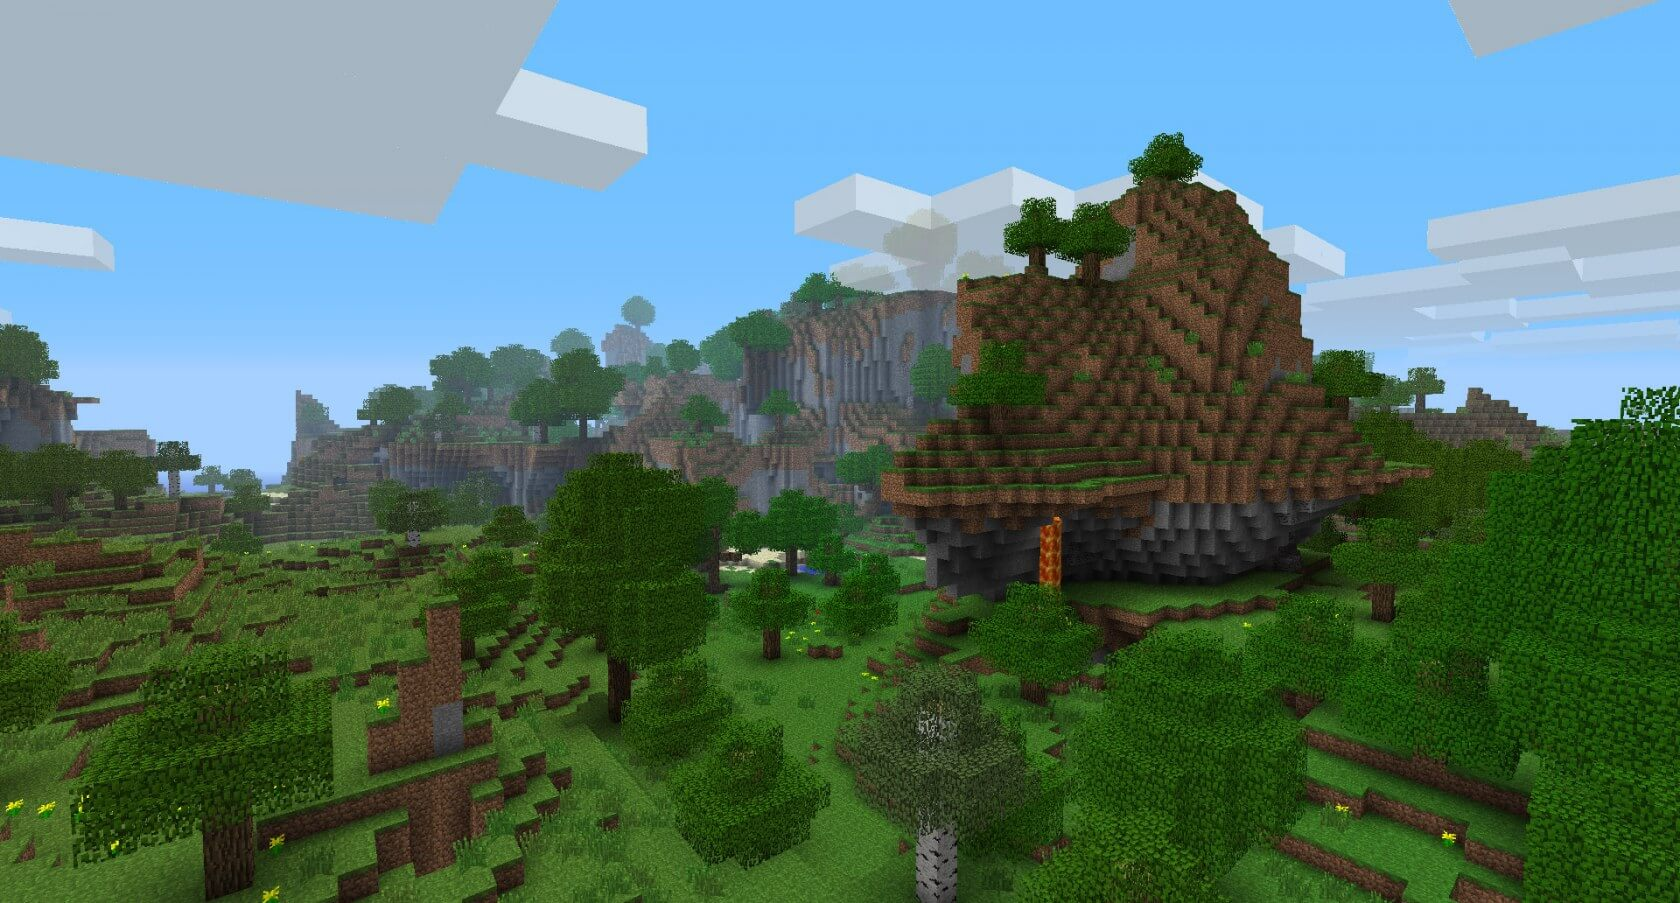 Minecraft drops support for Xbox 360, PS3, and Wii U